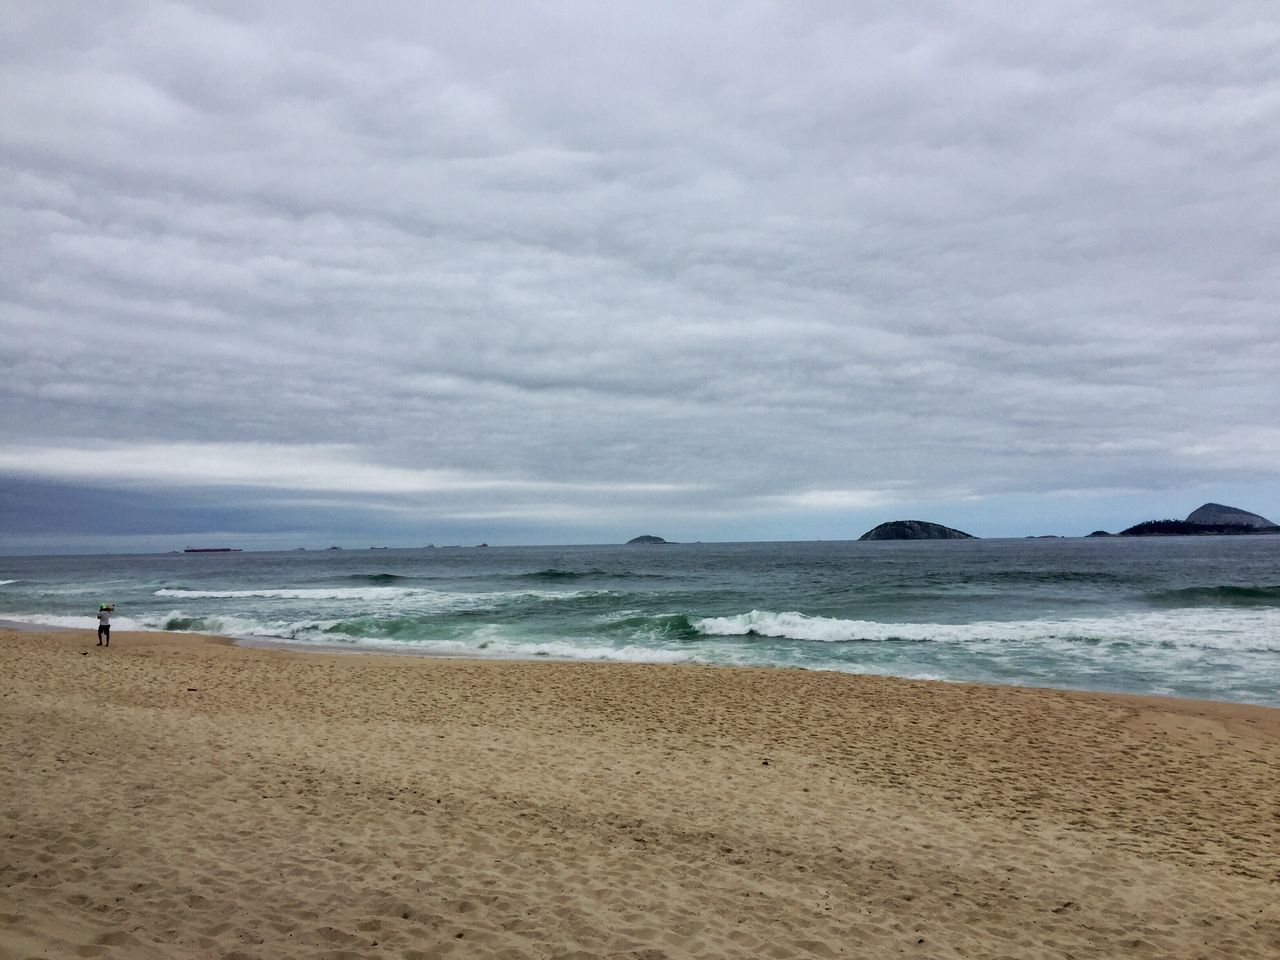 Ipanema Beach Rio De Janeiro Brasil ♥ Sea Beach Horizon Over Water Sky Sand Water Nature Scenics Shore Beauty In Nature Cloud - Sky Tranquility Tranquil Scene Outdoors Day (taked in nov/16/2016) What Who Where